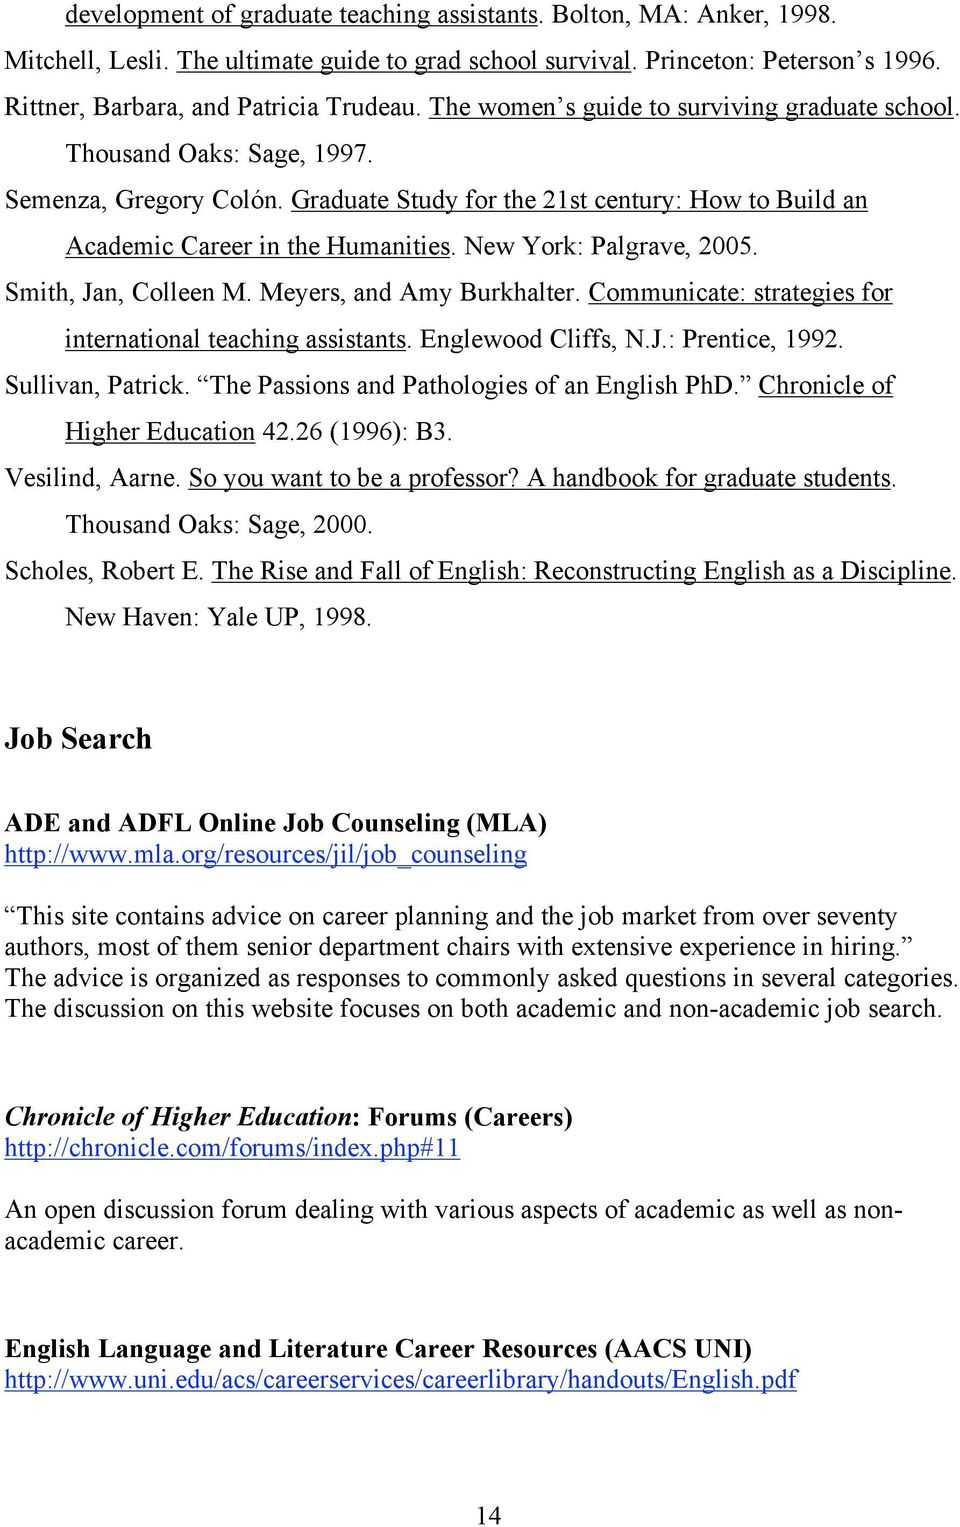 New York: Palgrave, 2005. Smith, Jan, Colleen M. Meyers, and Amy Burkhalter. Communicate: strategies for international teaching assistants. Englewood Cliffs, N.J.: Prentice, 1992. Sullivan, Patrick.